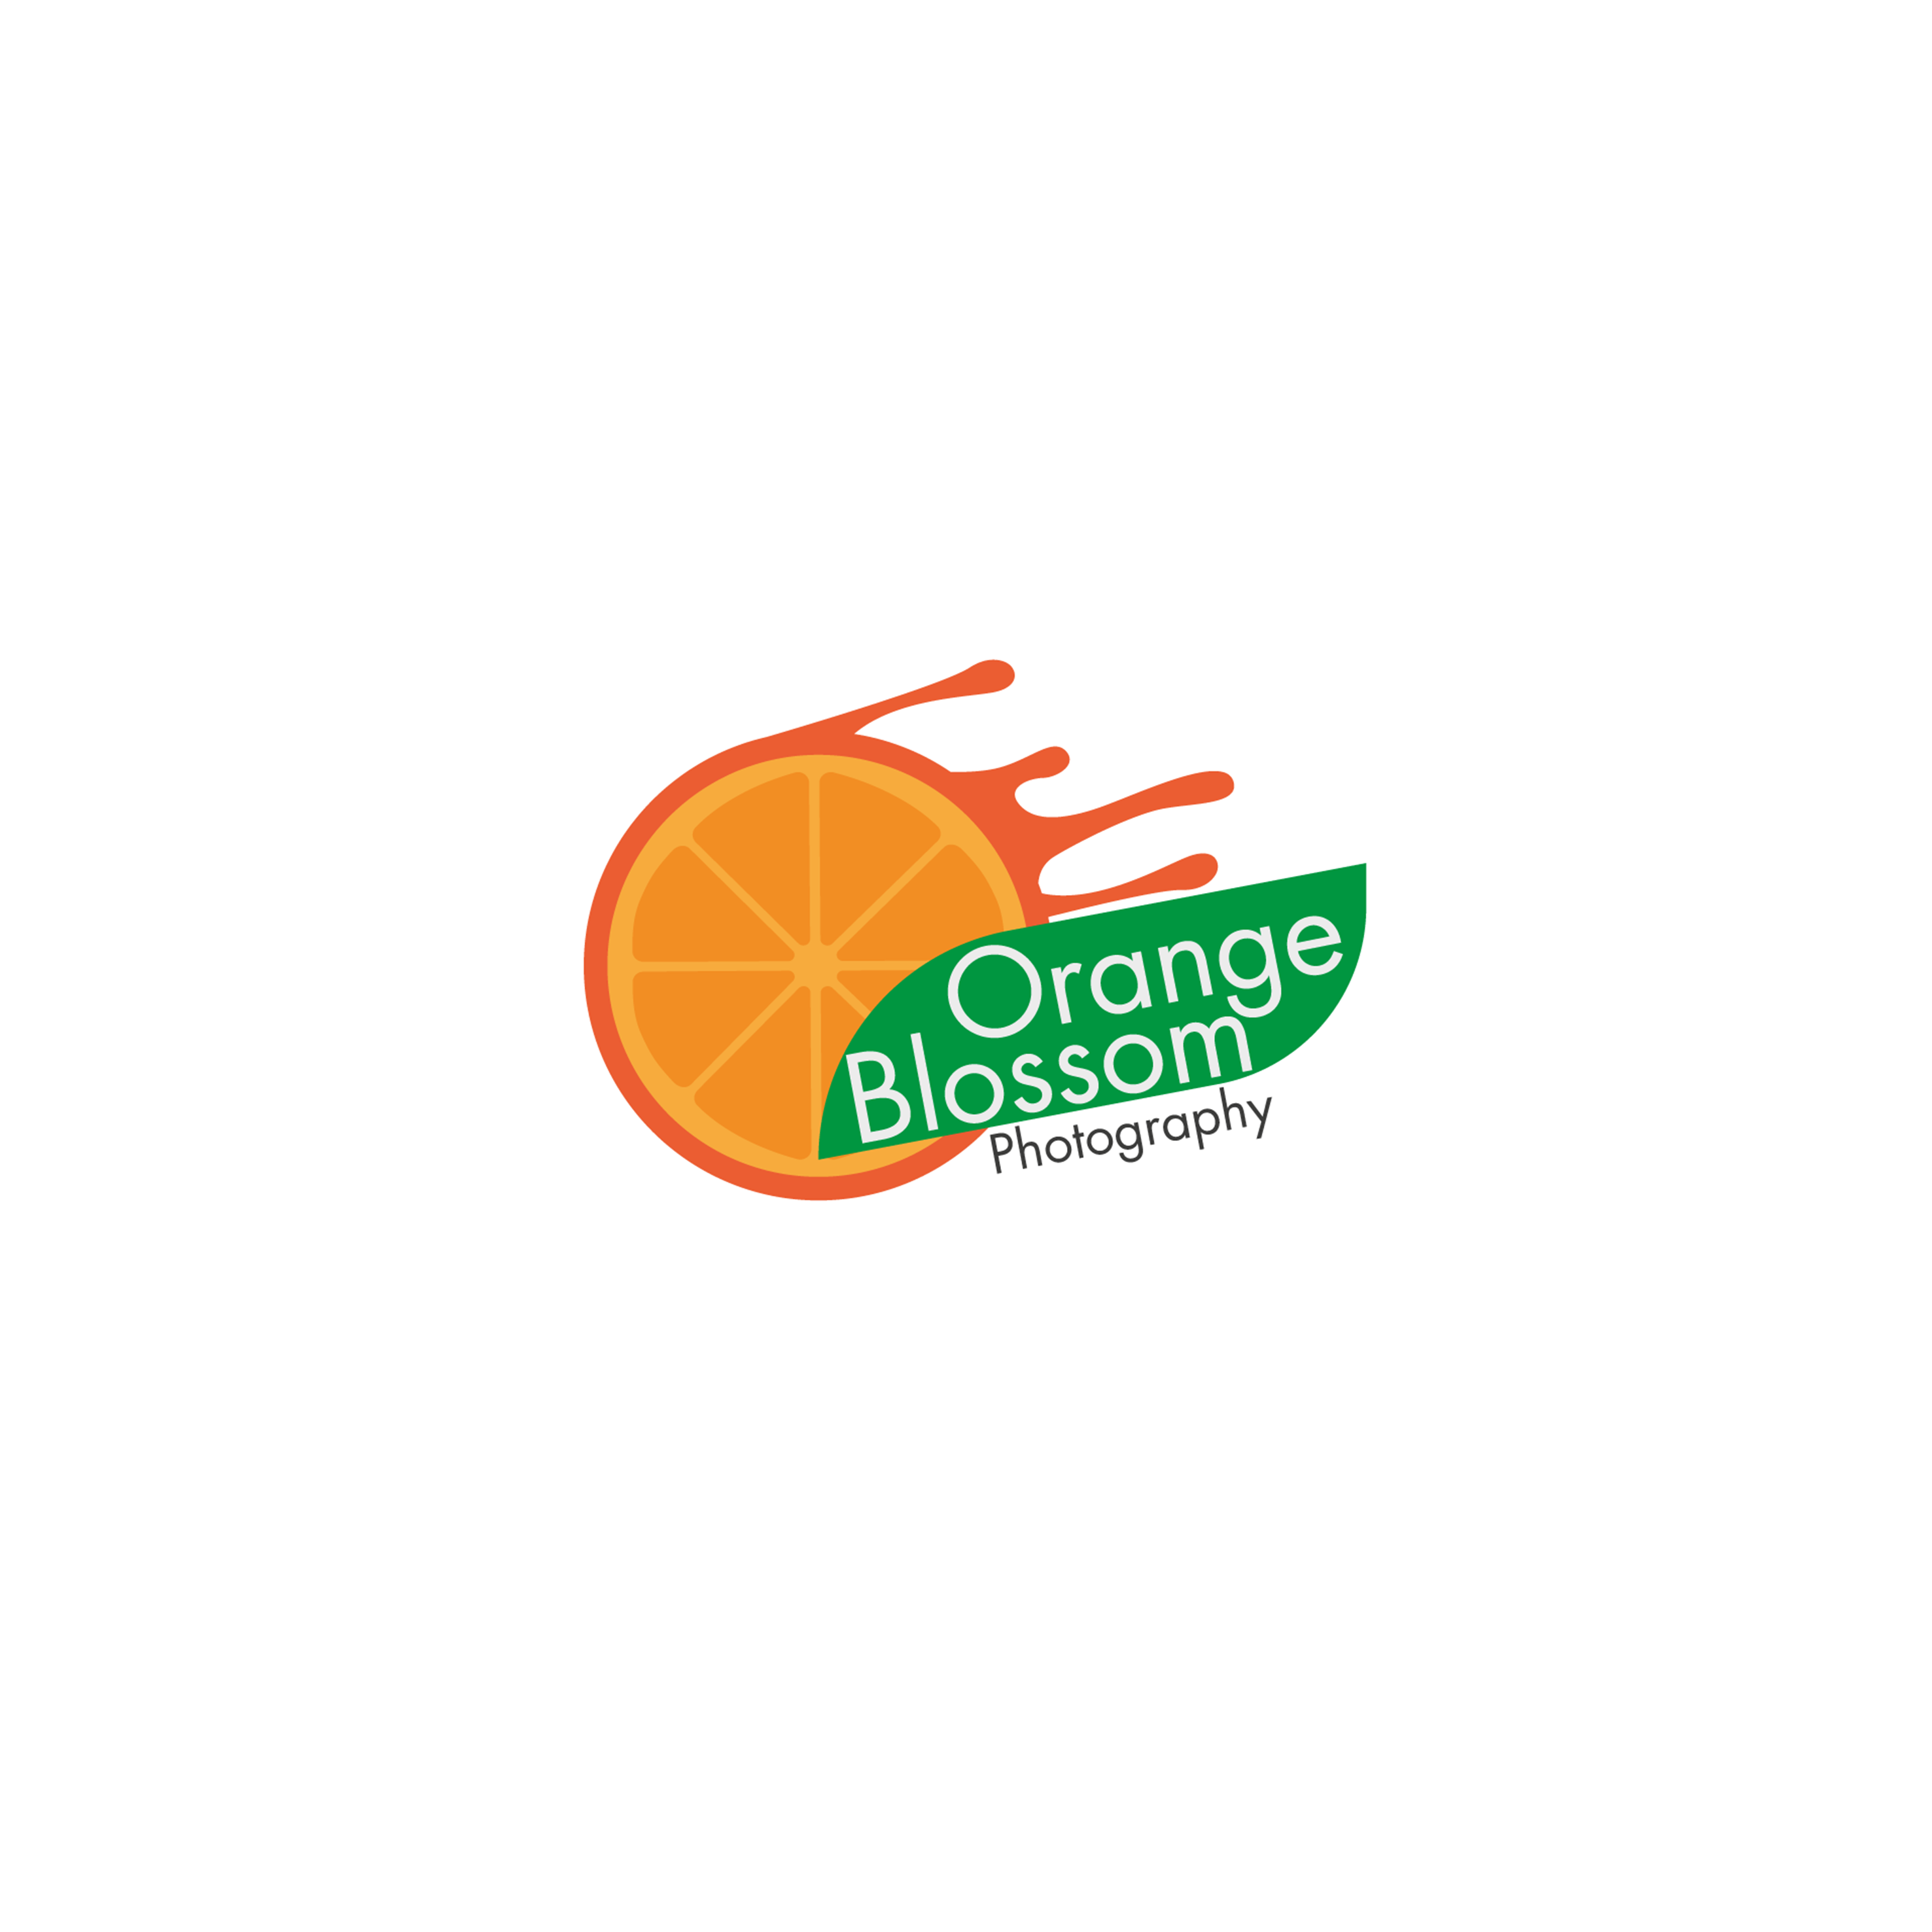 Orange Blossom Logo Design